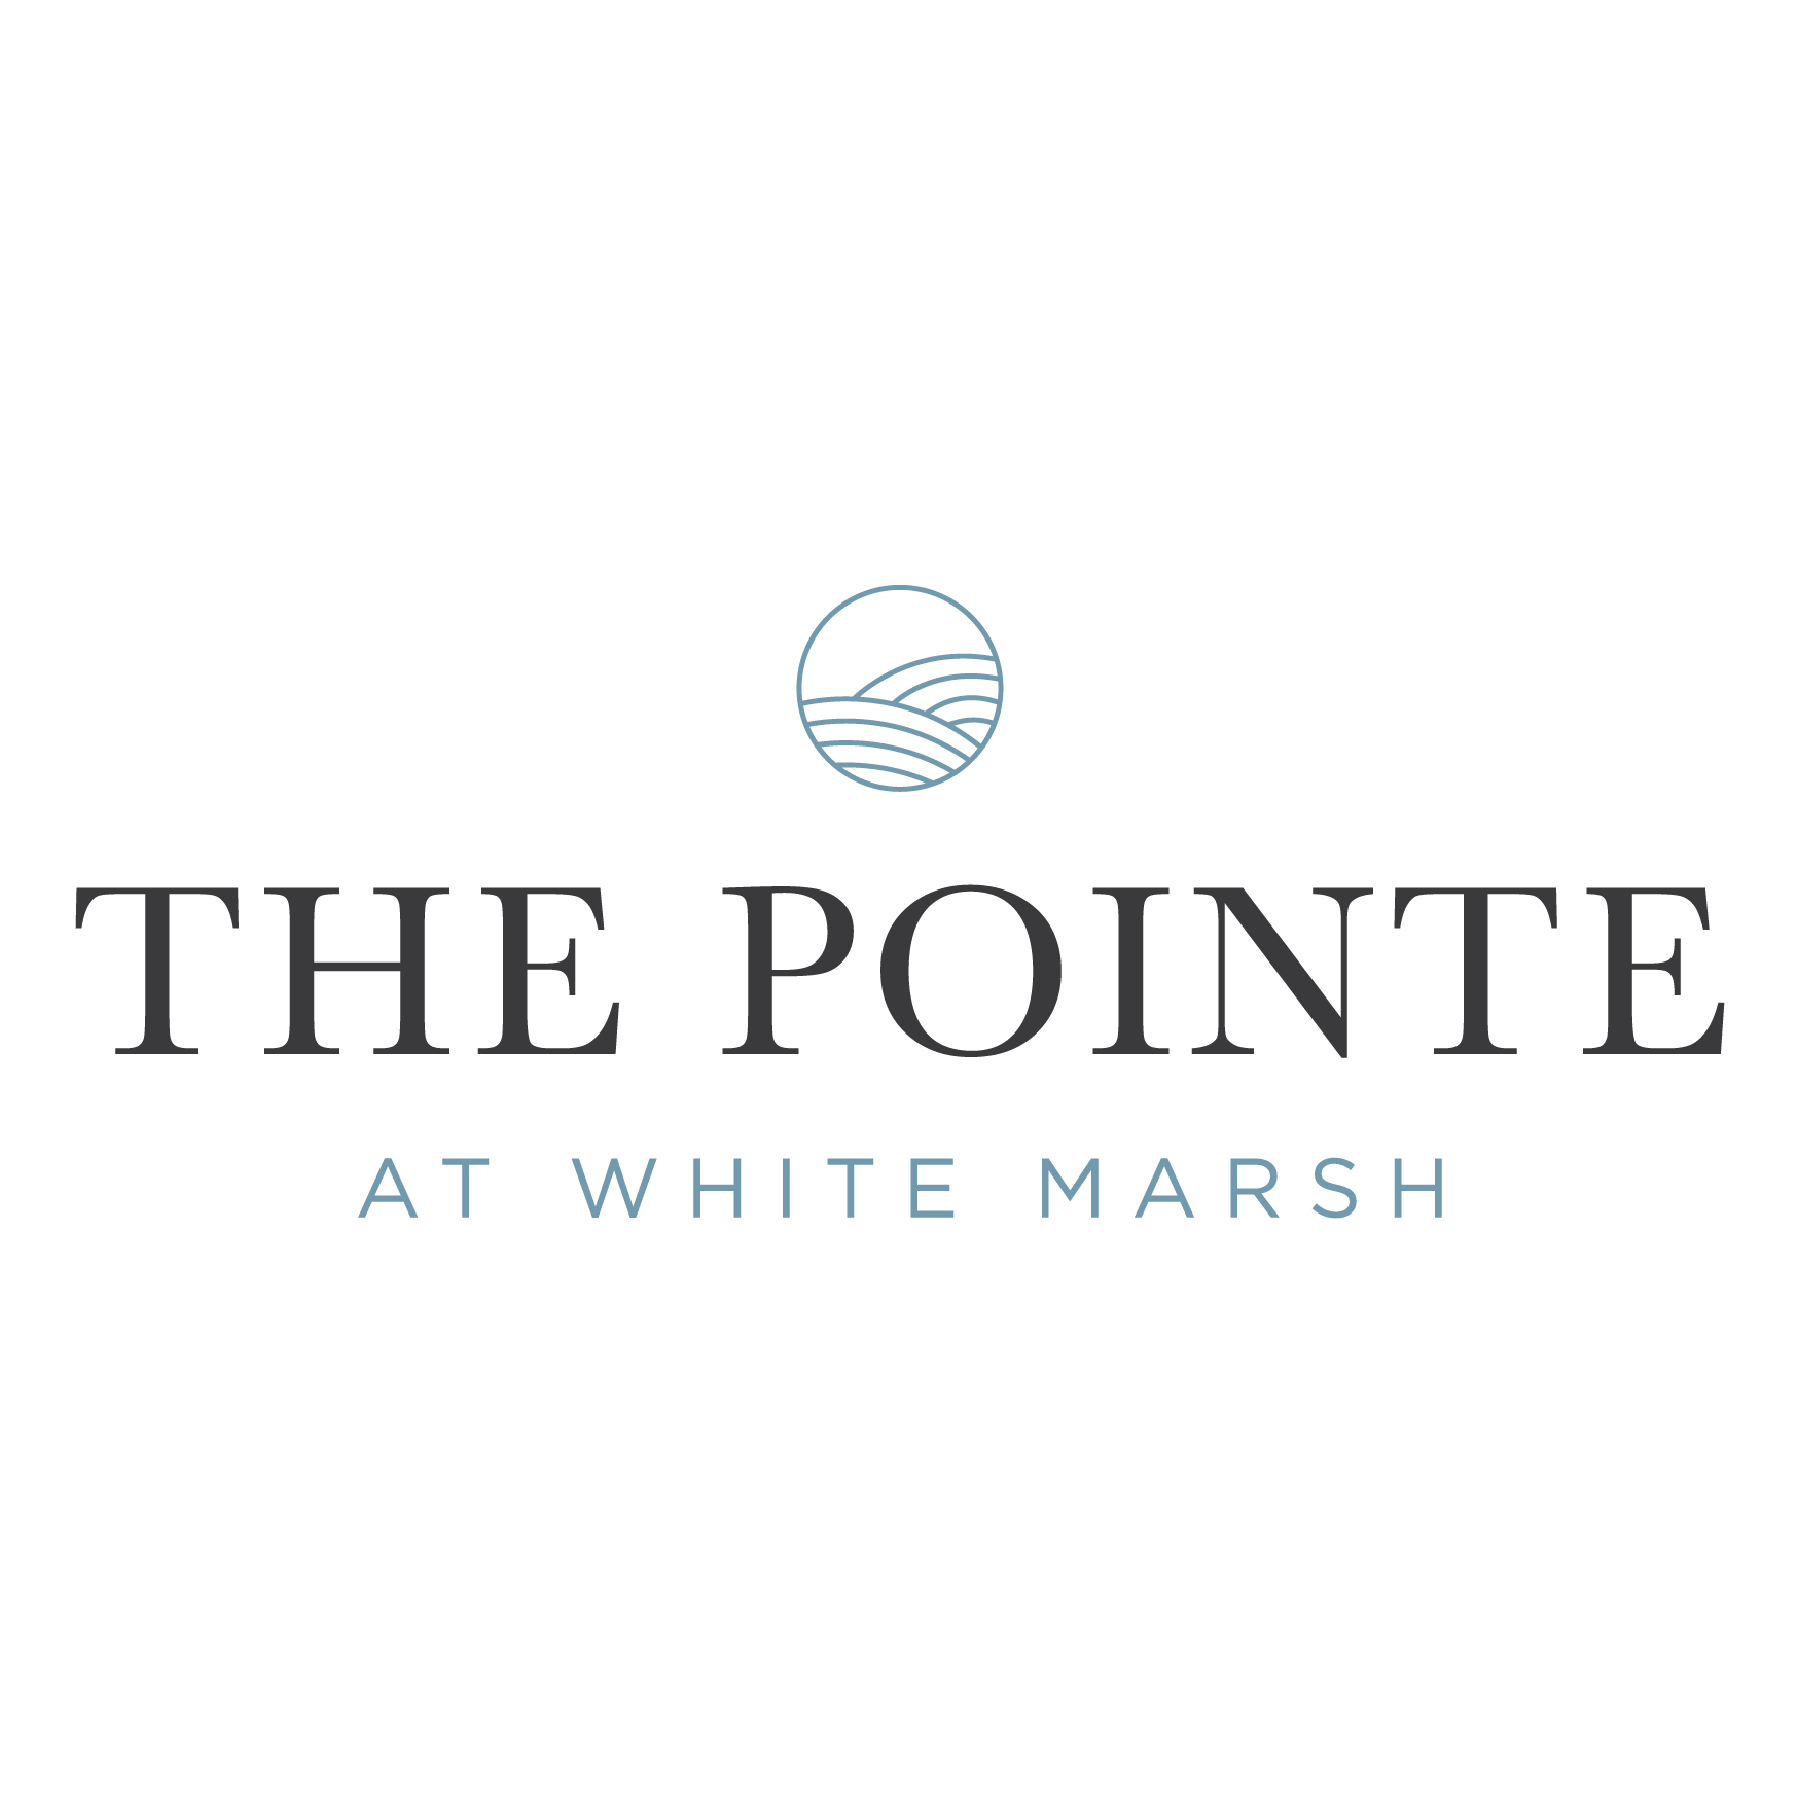 The Pointe at White Marsh